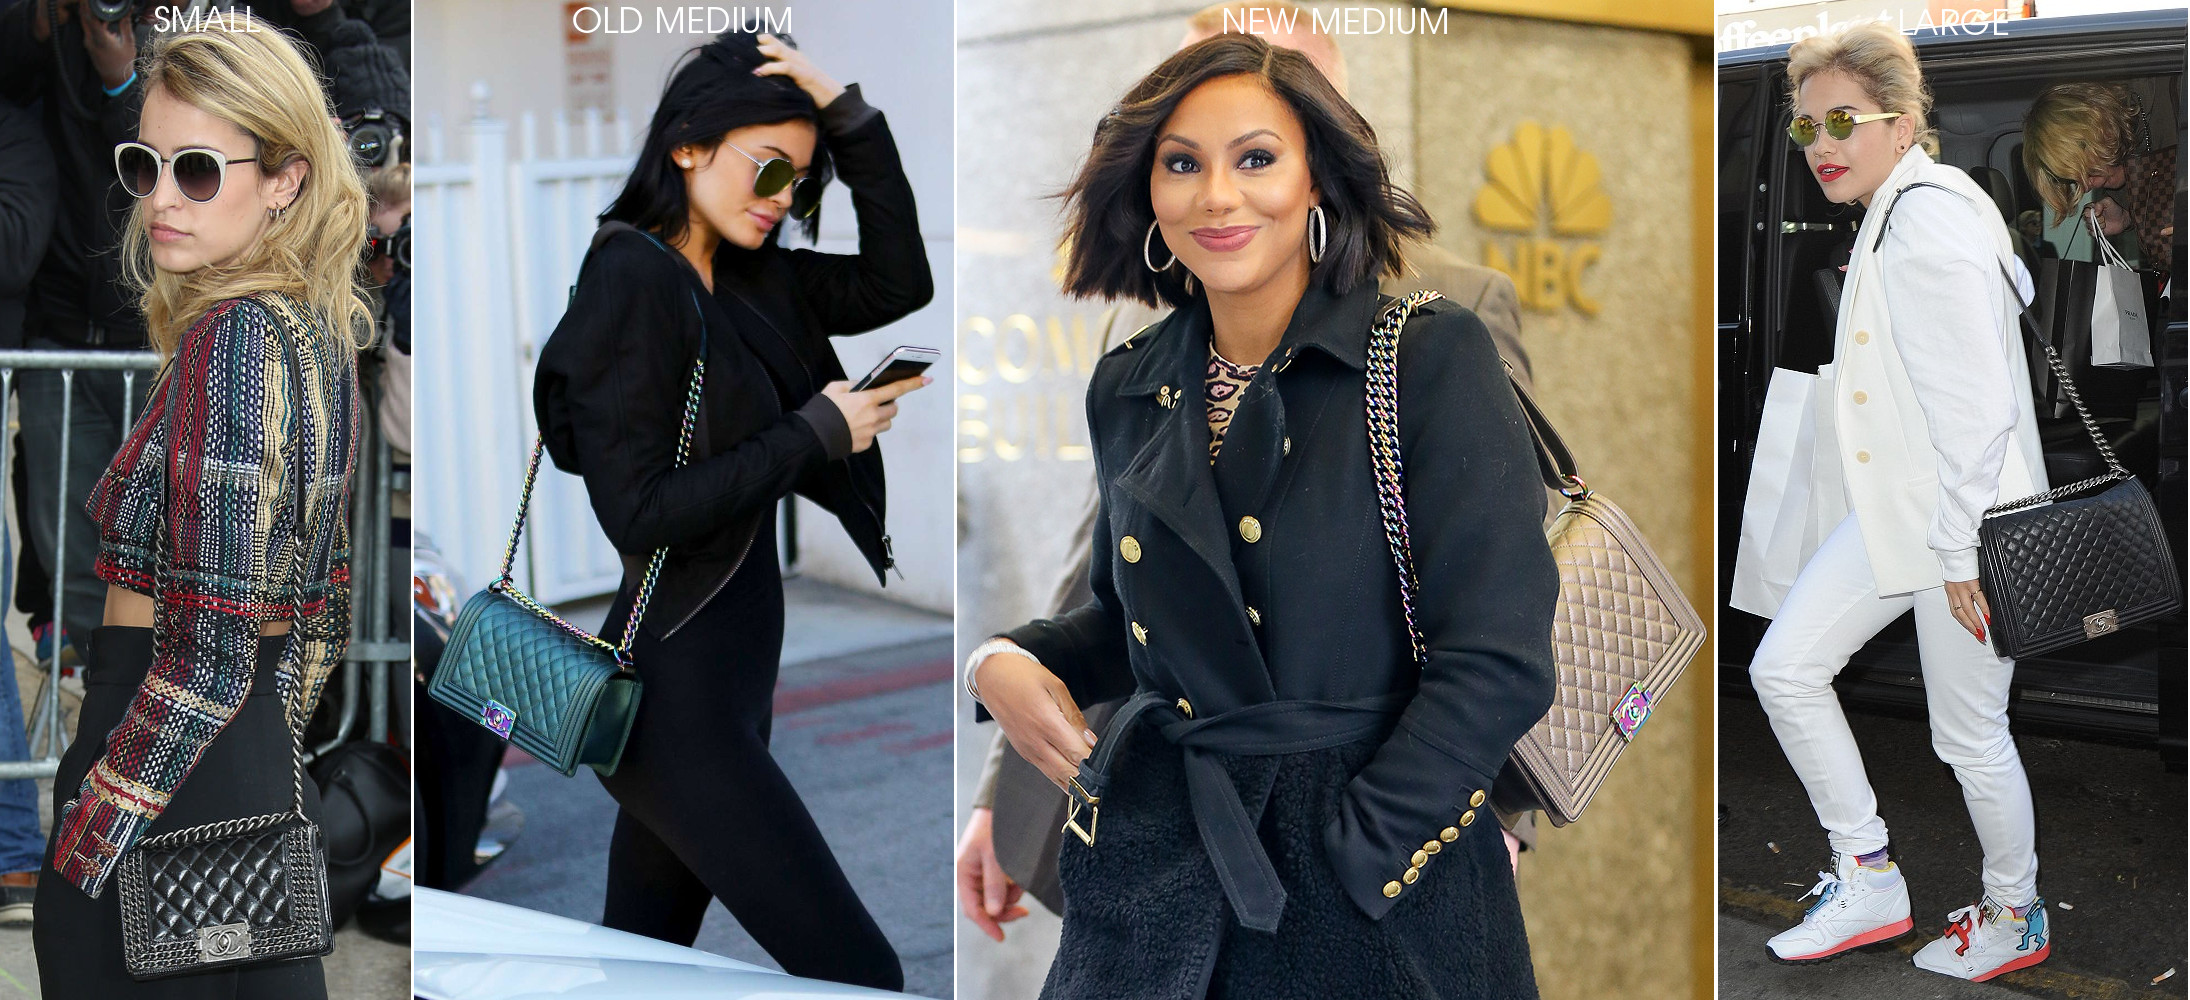 325a311966c7e celebrities wearing chanel small old new medium large le boy flap bag  comparison